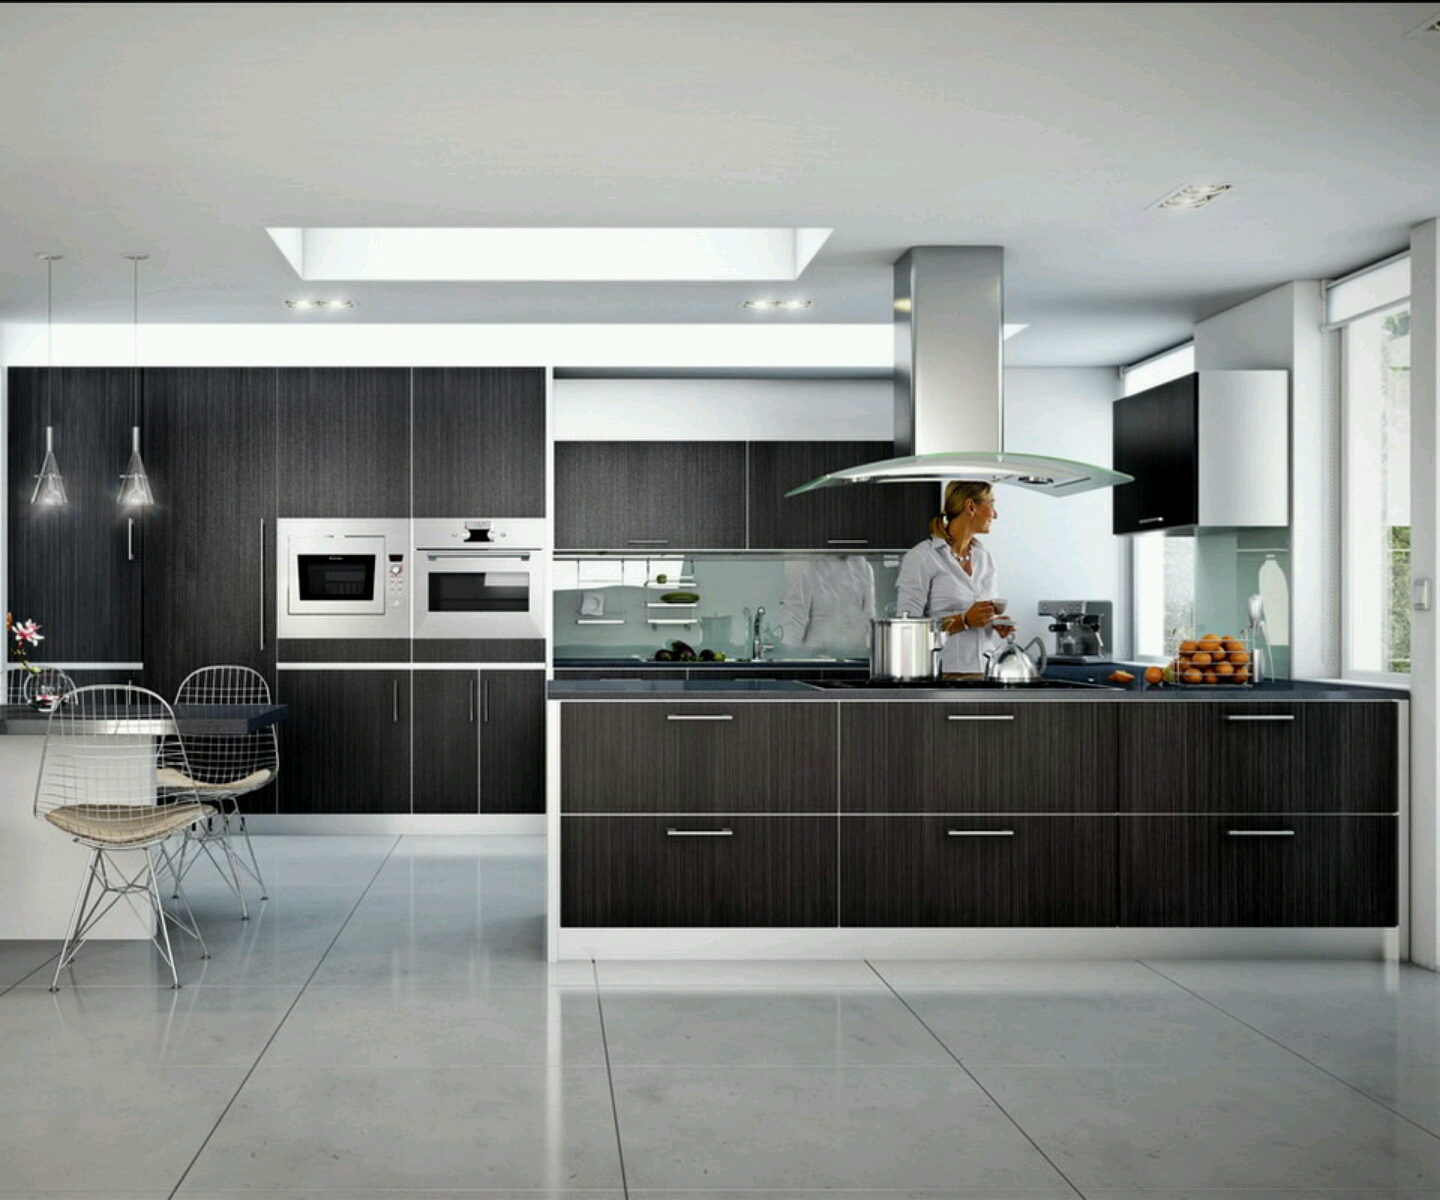 Delicieux Modern Homes Ultra Modern Kitchen Designs Ideas.